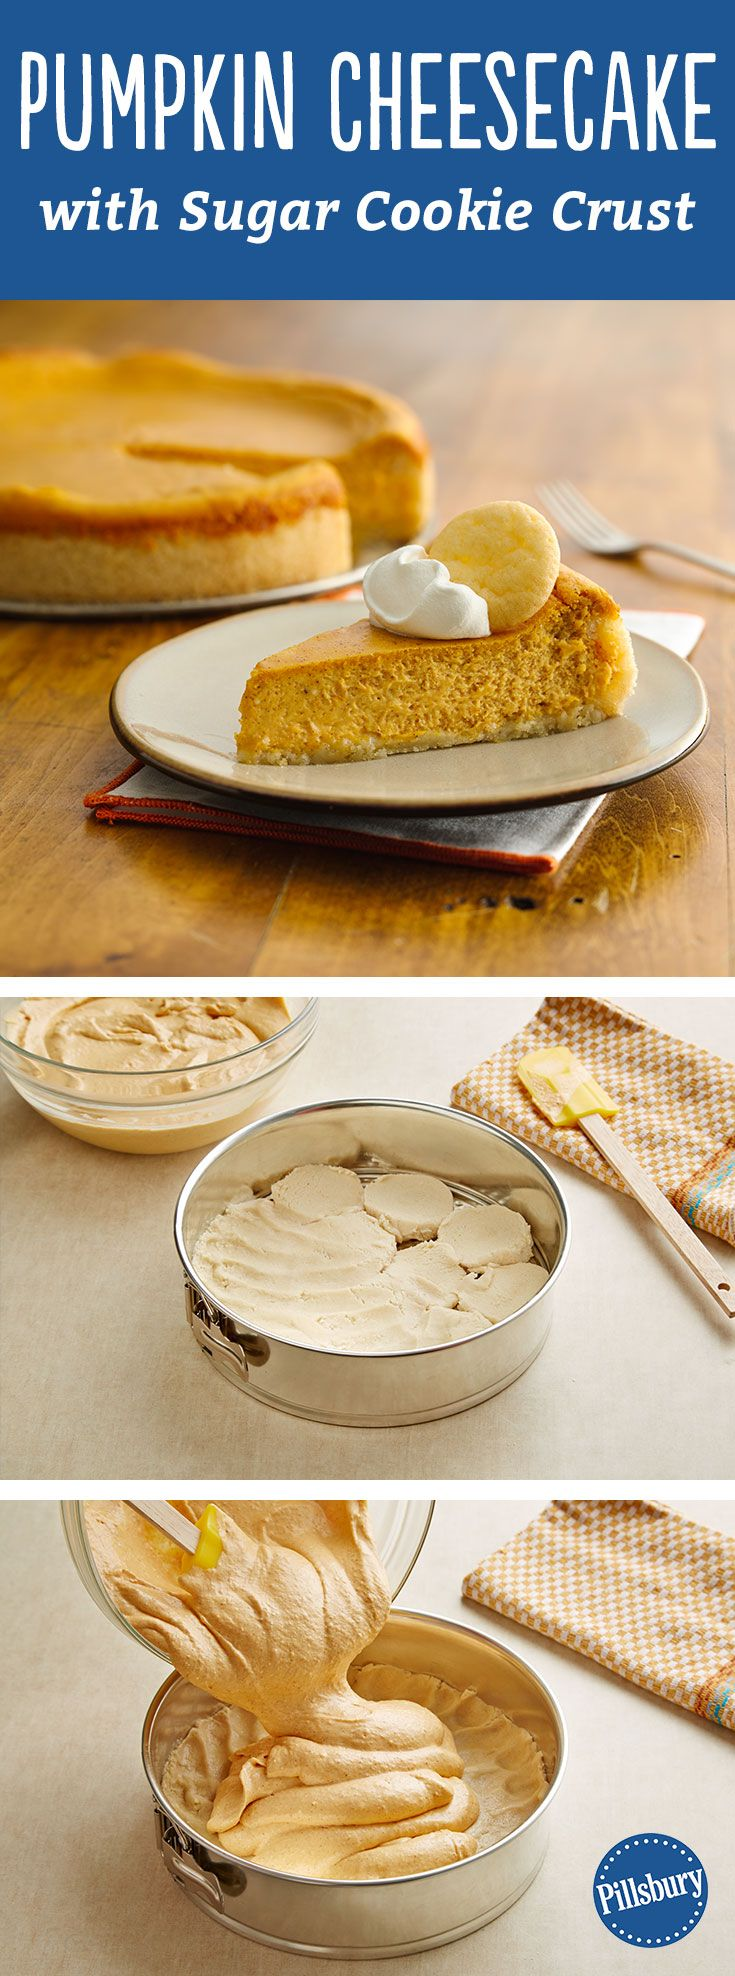 Check Out Pumpkin Cheesecake With Sugar Cookie Crust It 39 S